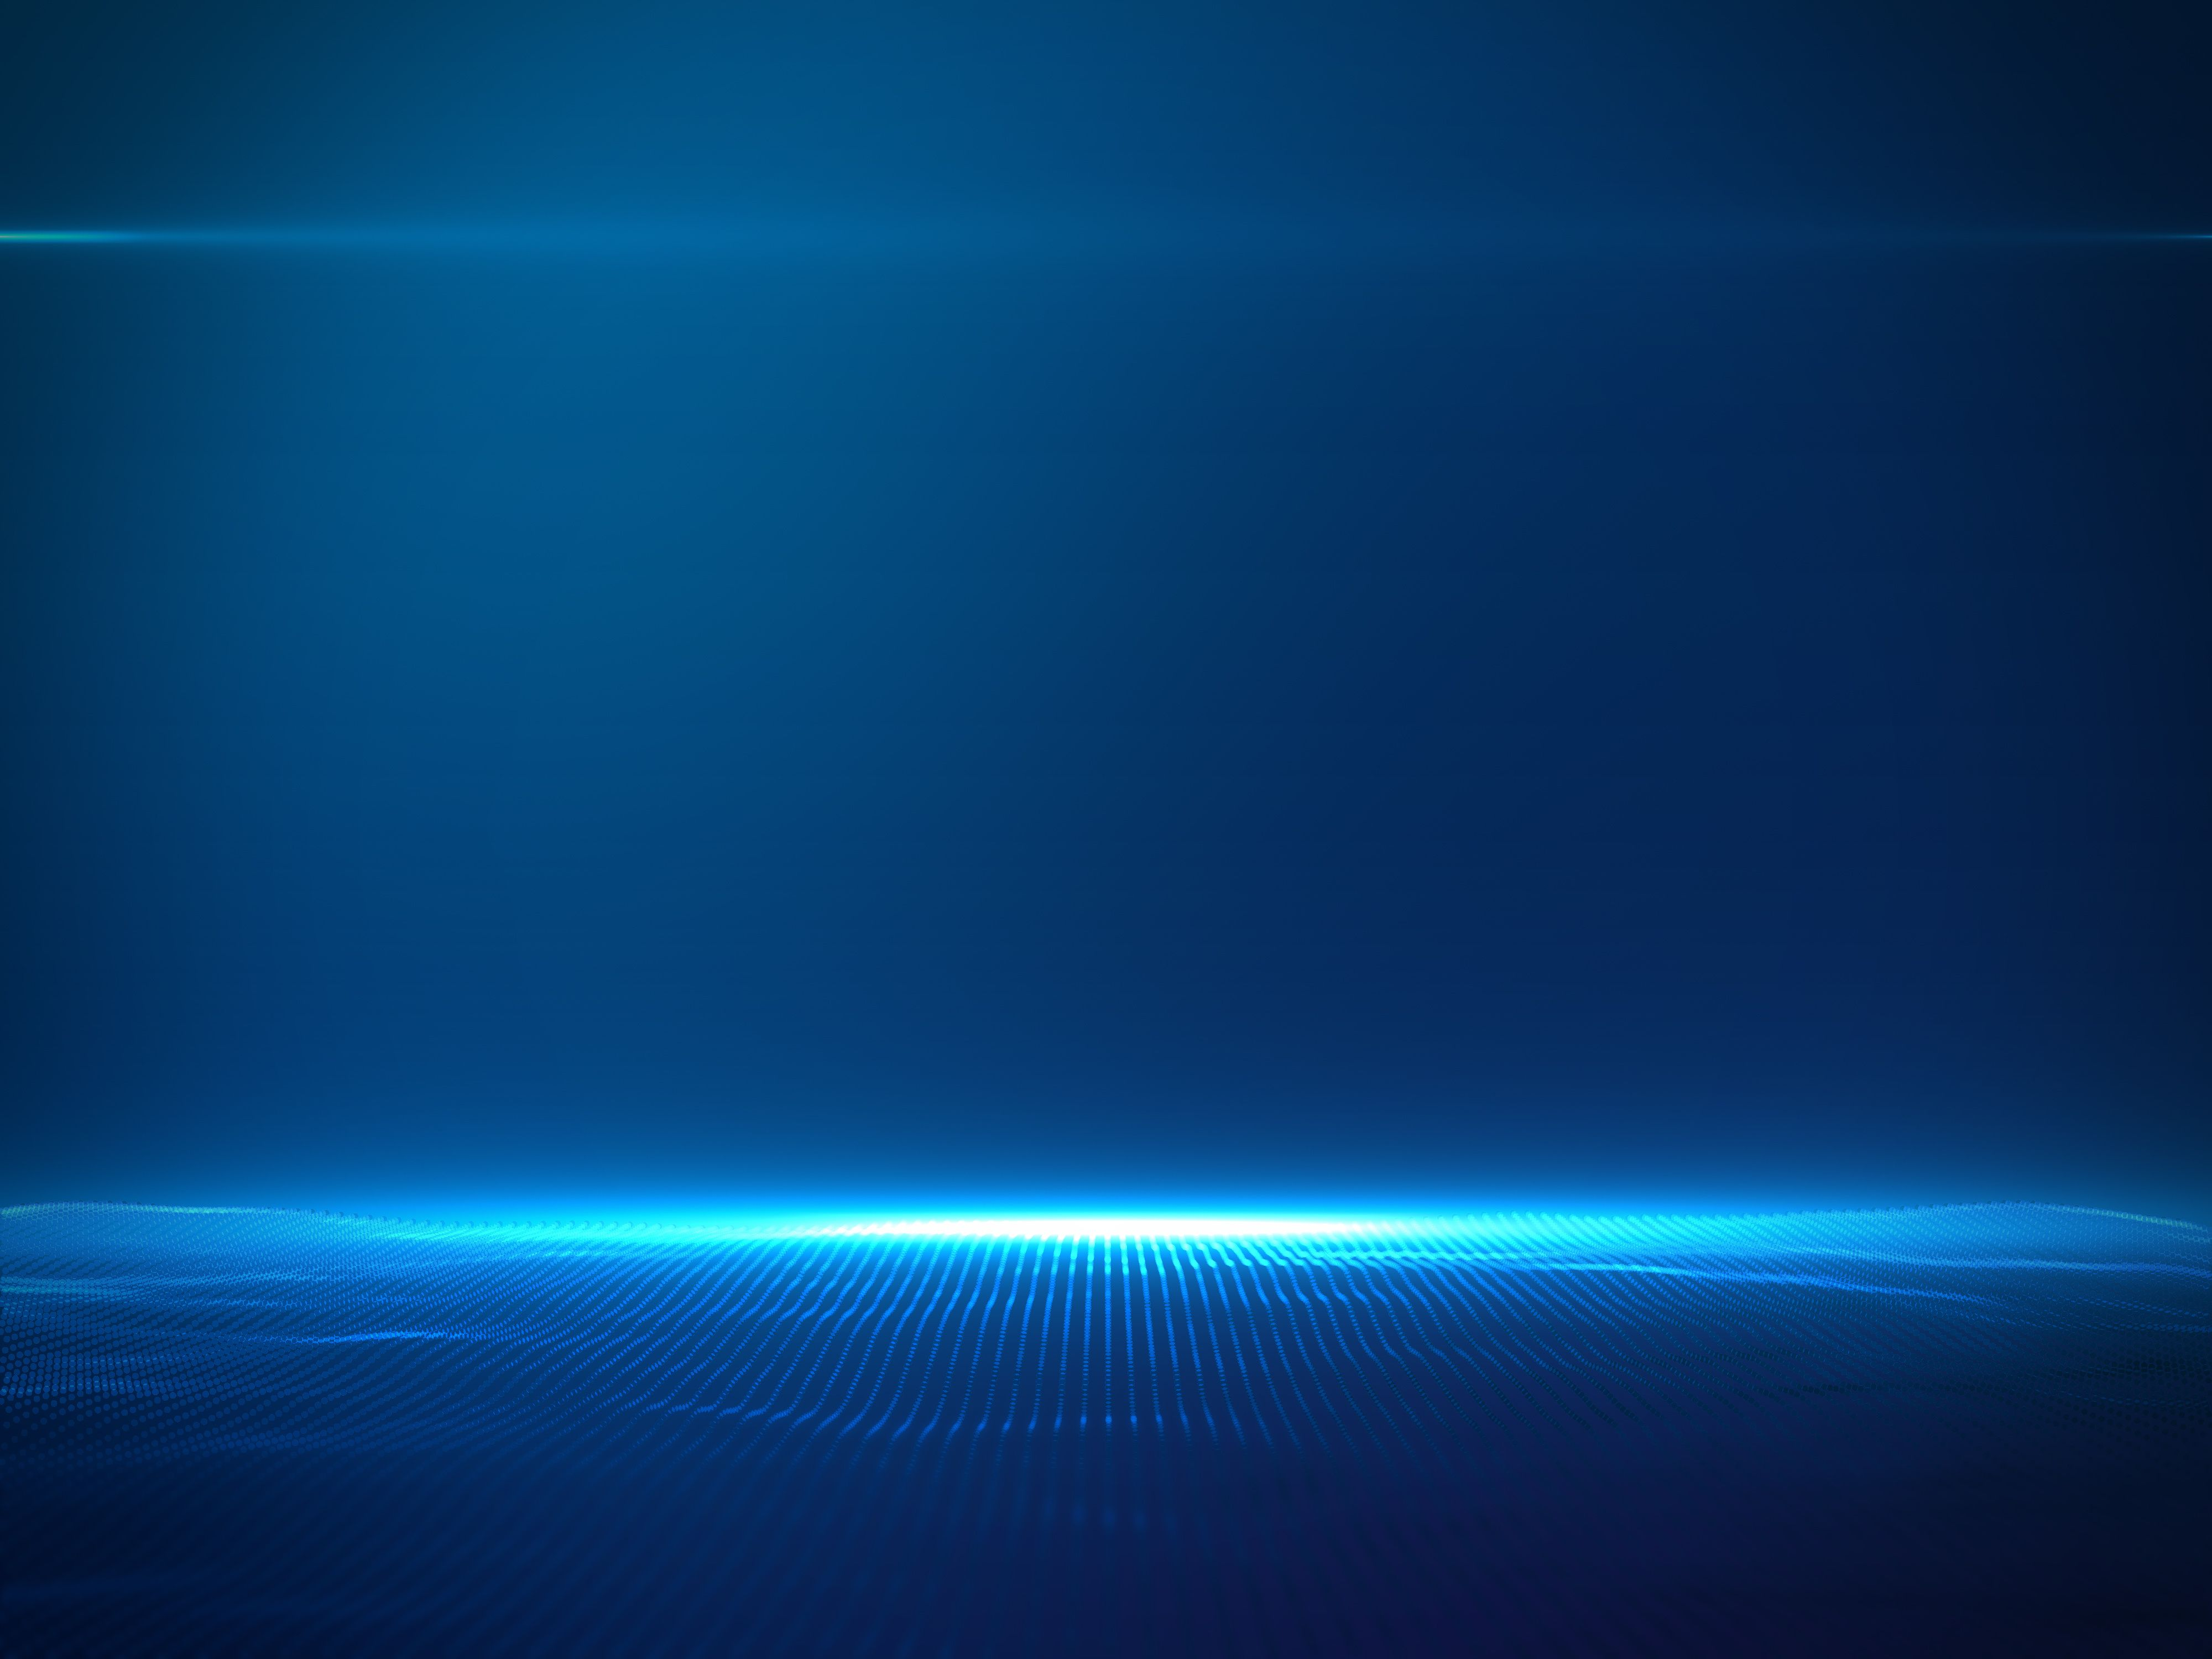 Blue 4K Wallpapers - Top Free Blue 4K Backgrounds ...